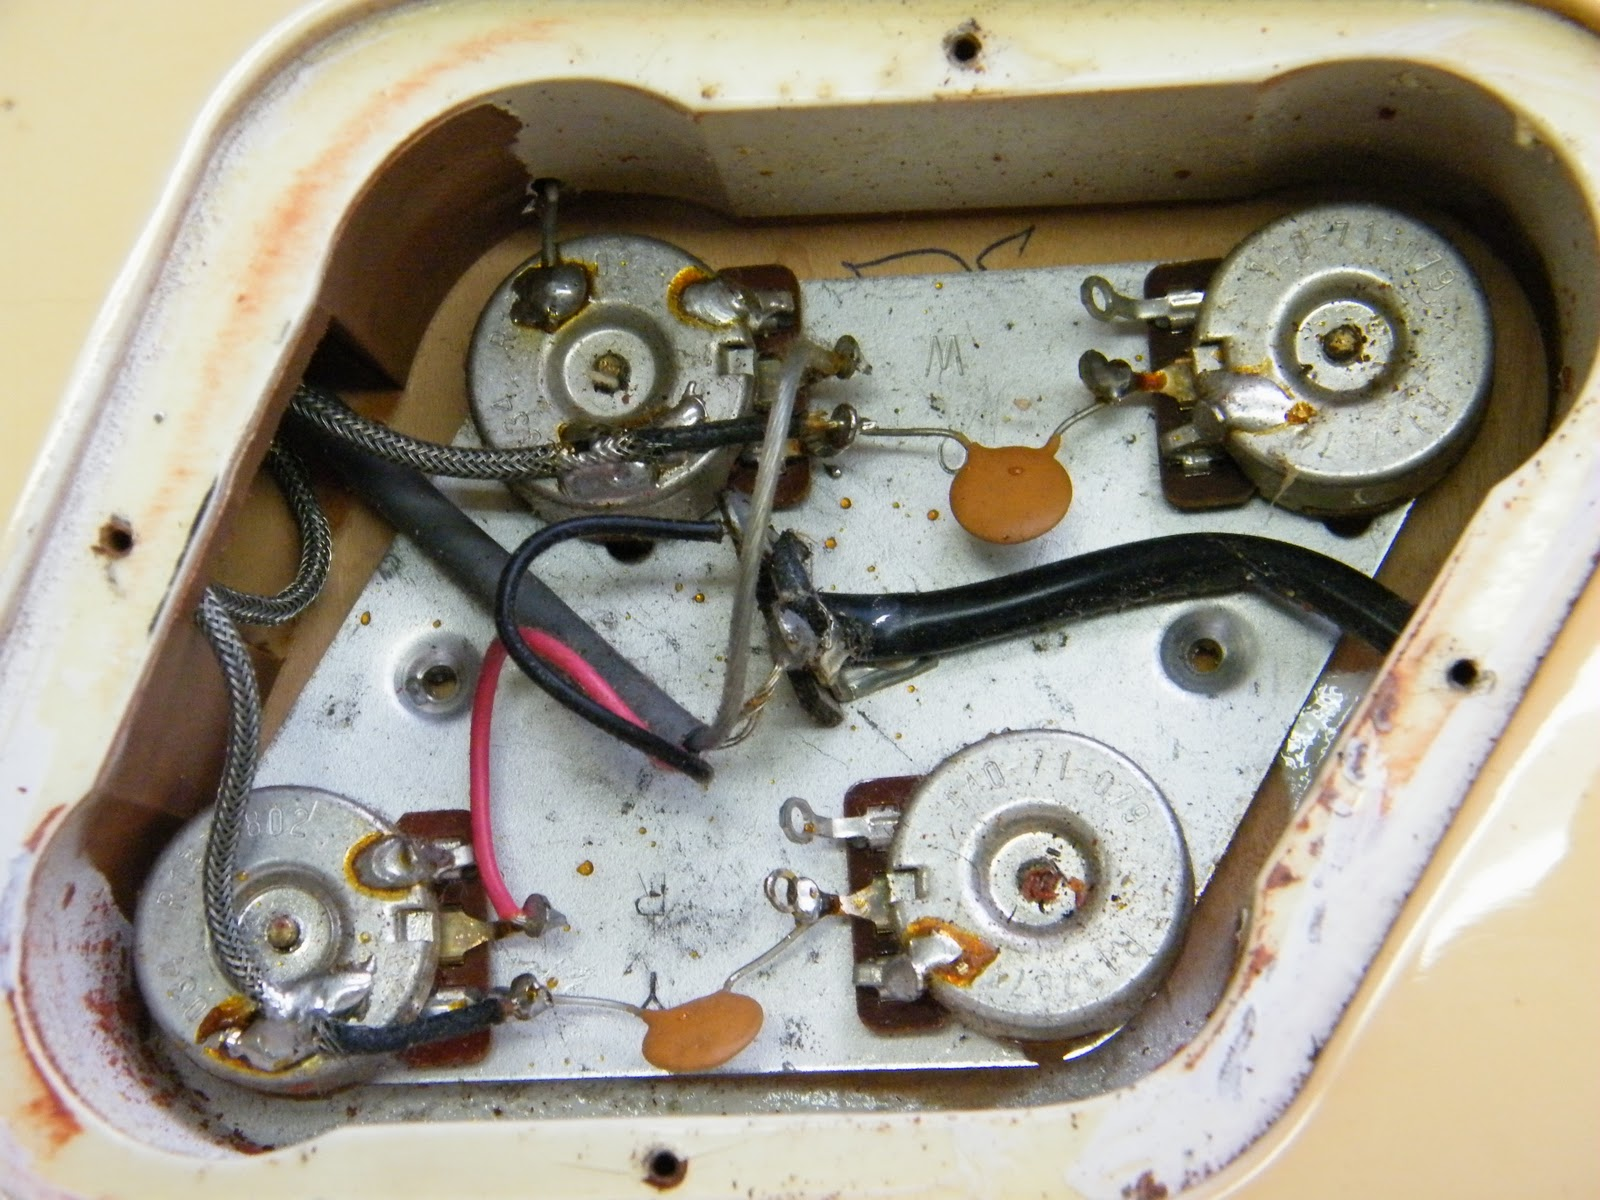 gibson les paul studio deluxe wiring diagram carrier 30gx chiller is it real chinese how do you know heres the